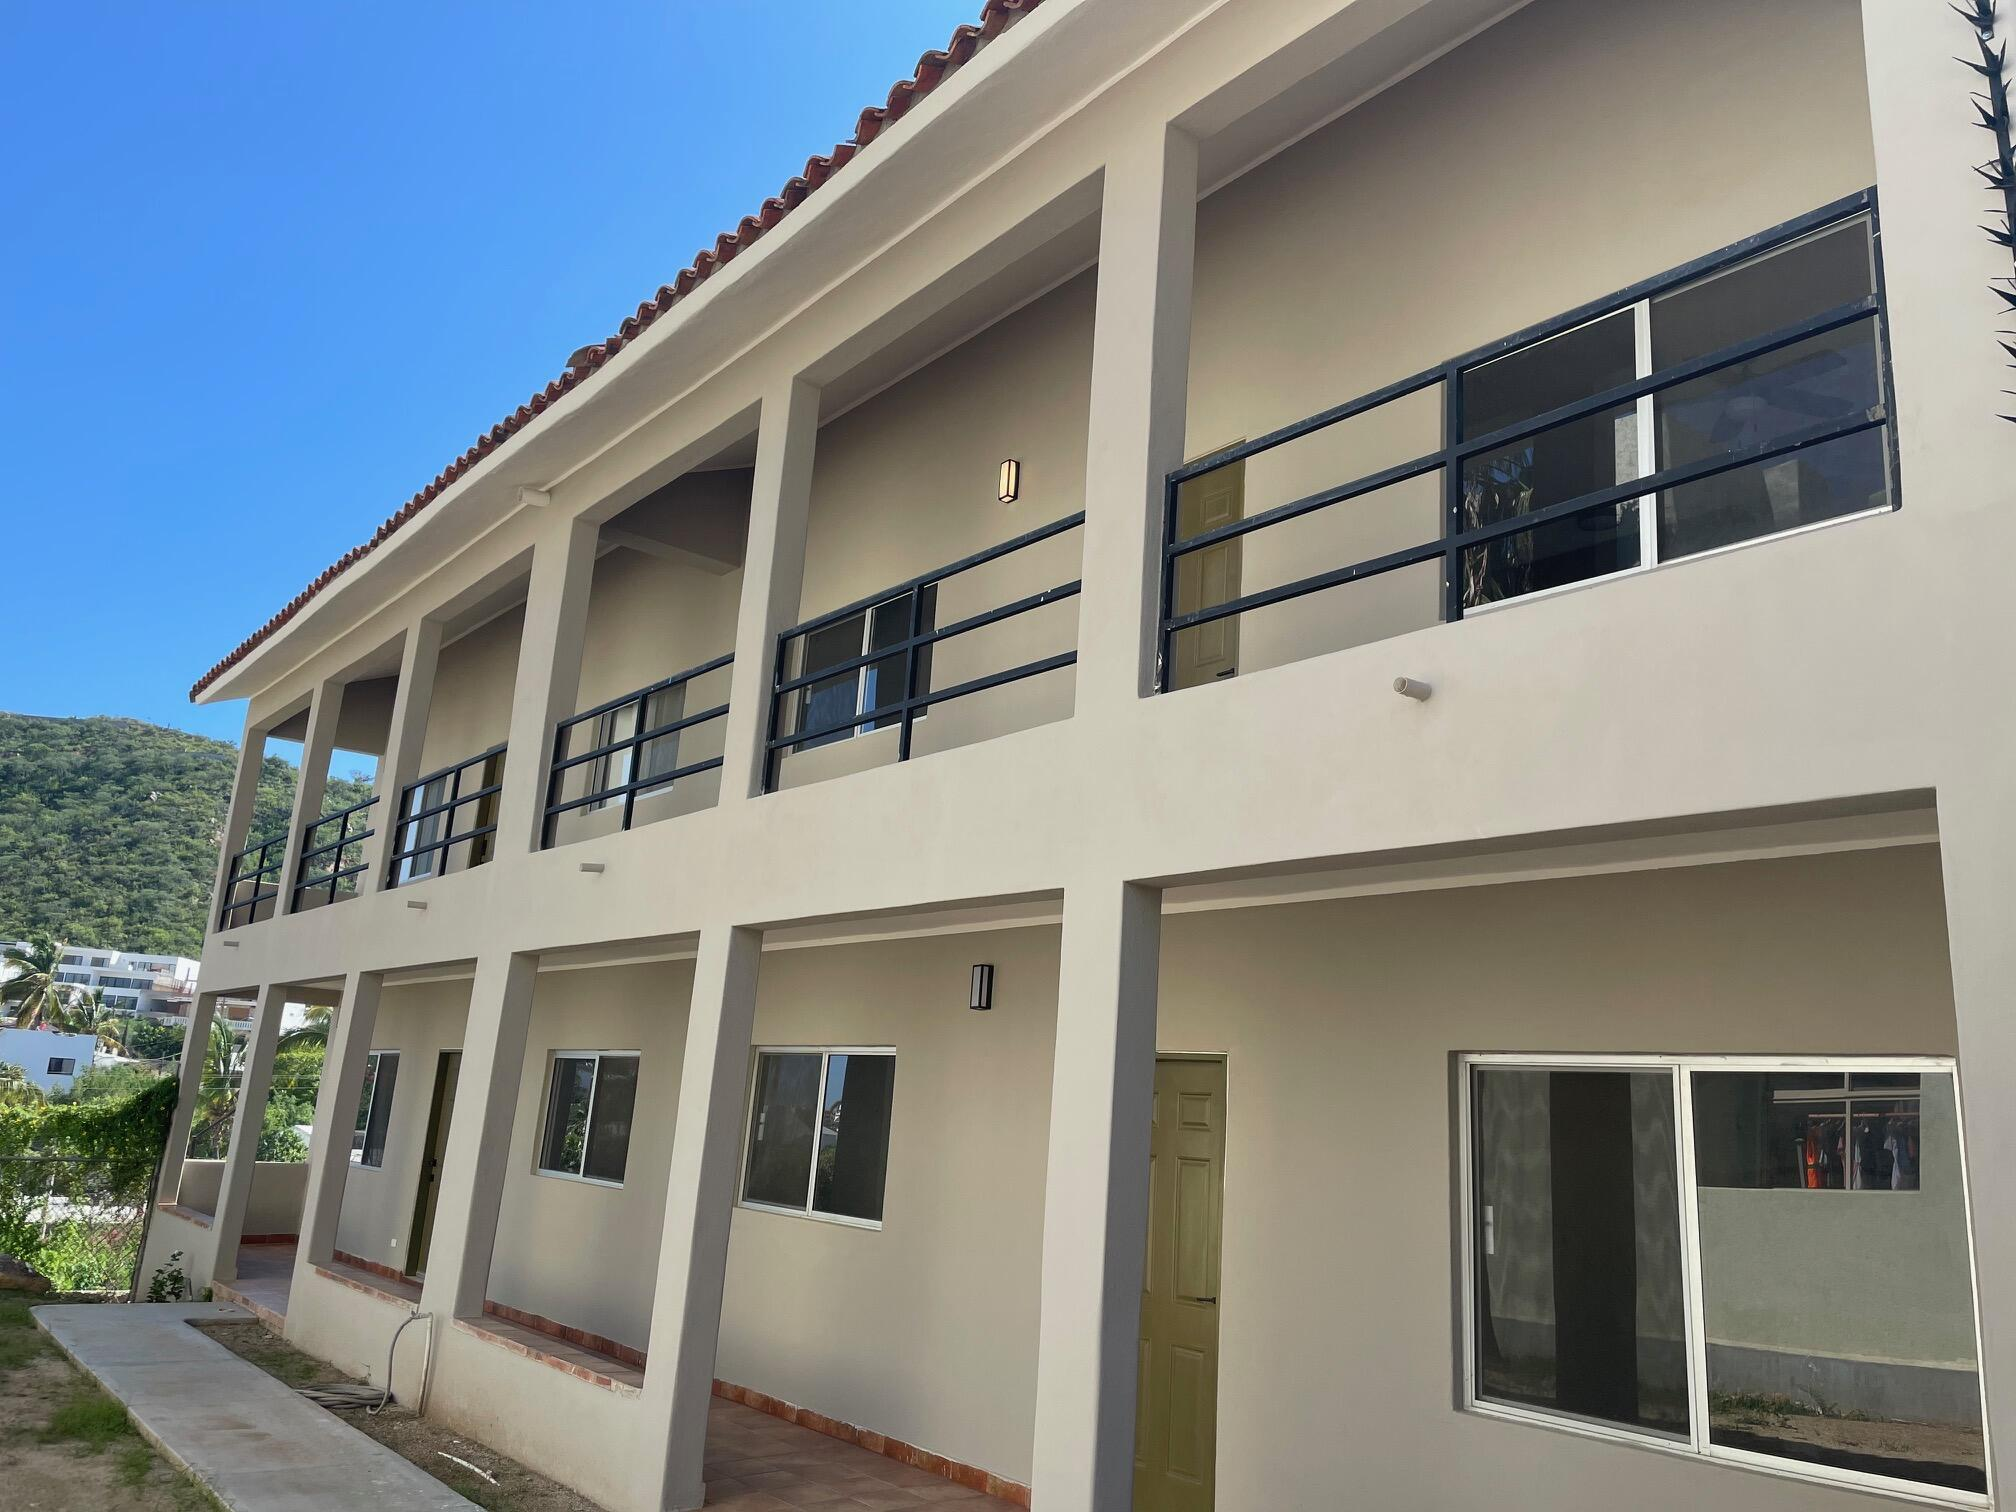 Location Location Location. This newly remodeled 4 units building located only a few blocks from the heart of Cabo San Lucas,  each has 2 bedrooms and 2 full bathrooms, excellent for vacation rental investment.NO HOA.